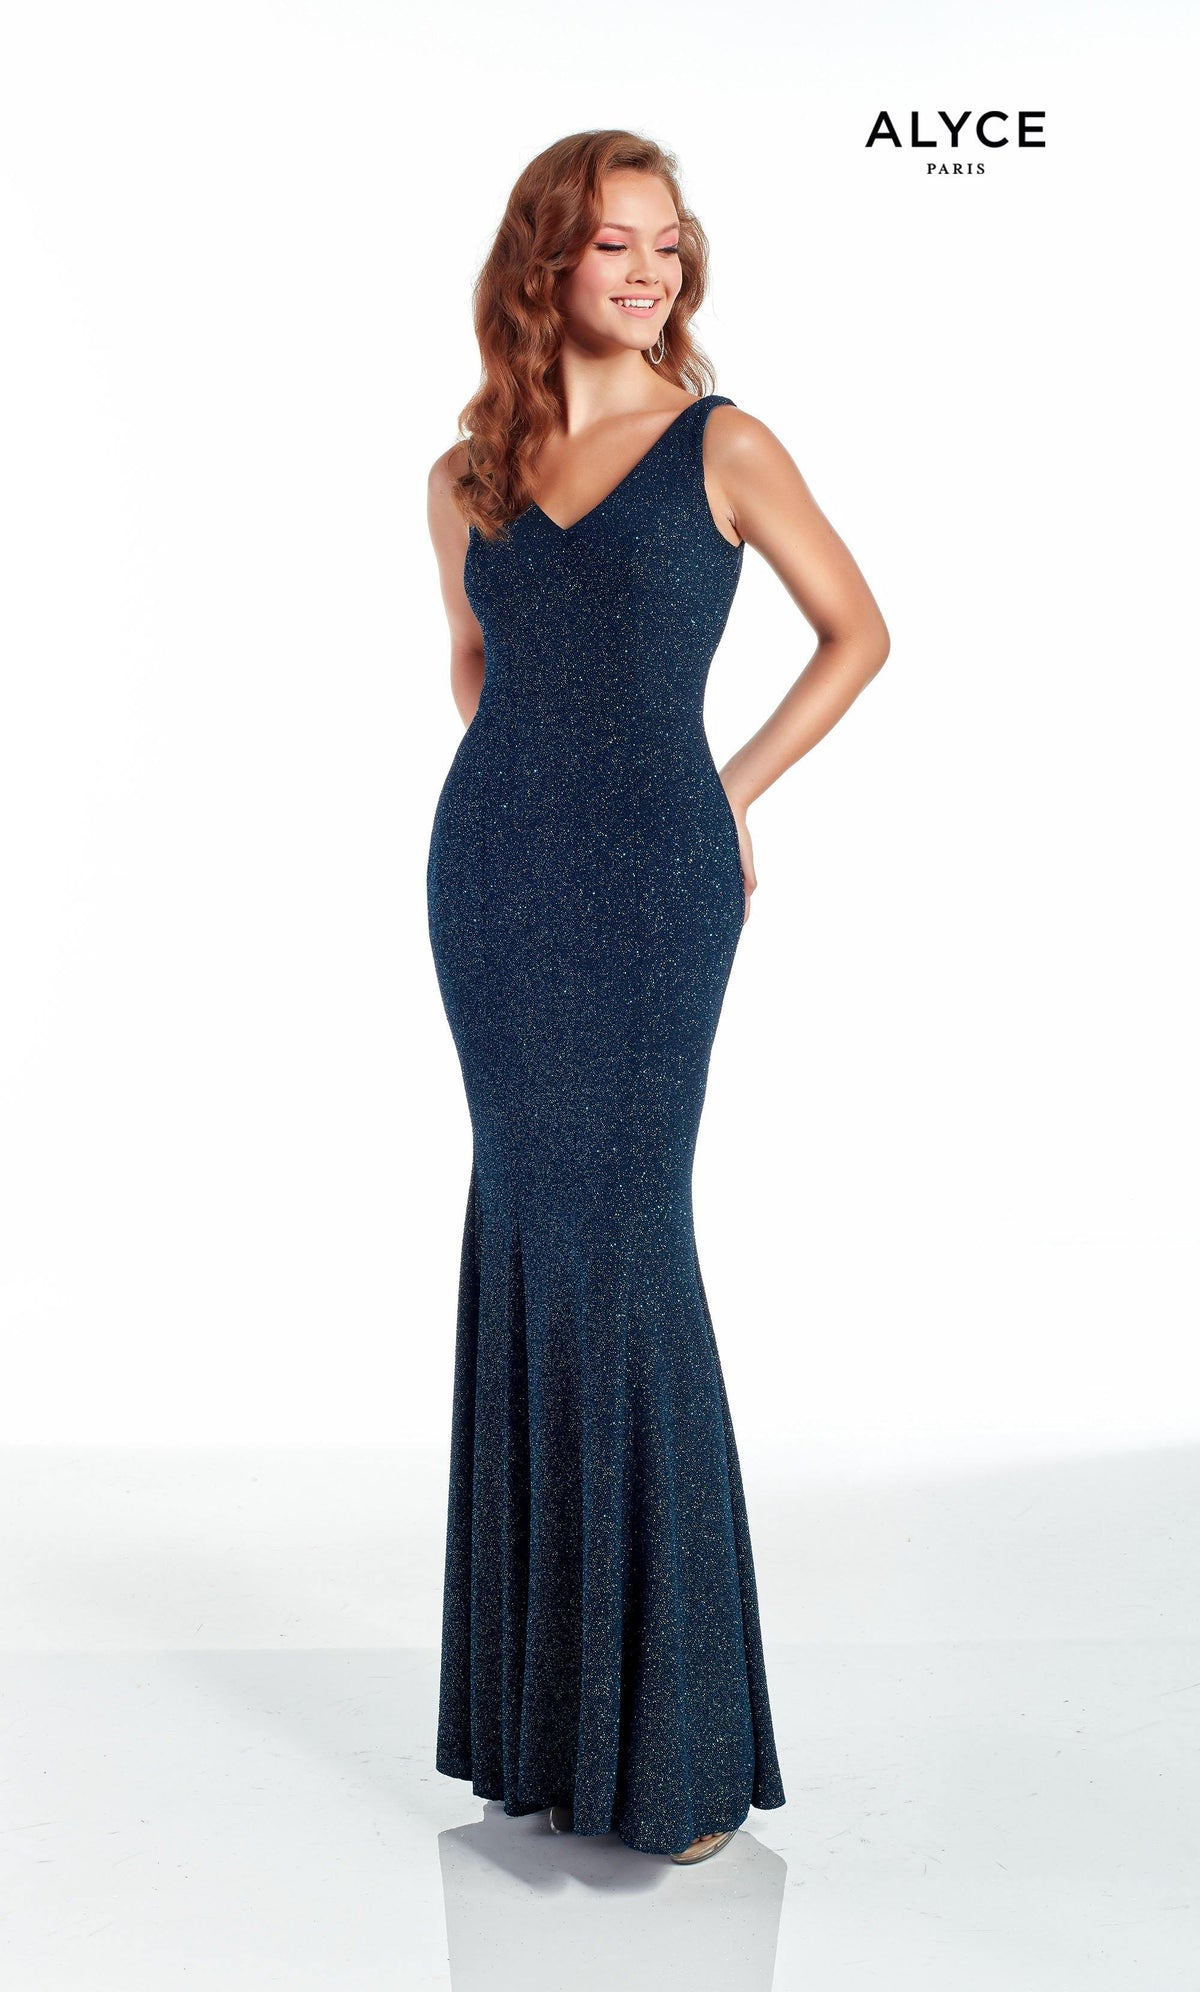 Blue Opal glitter jersey evening dress with a V neckline